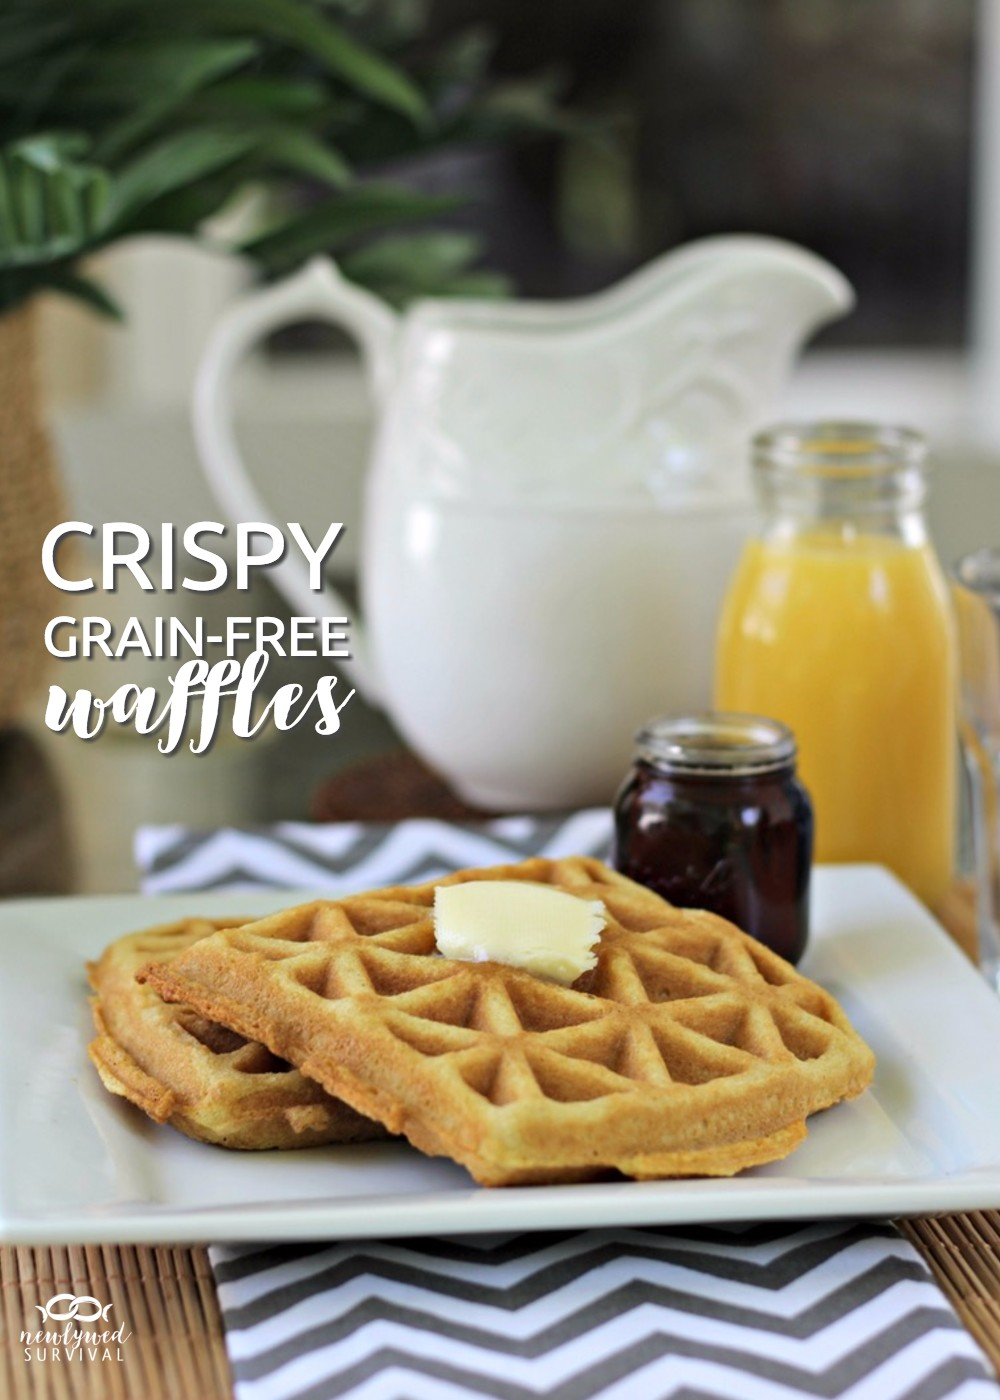 These look so good!! Crispy Grain-Free Waffle Recipe & Enjoying a Summer Morning with #DunkinCreamers